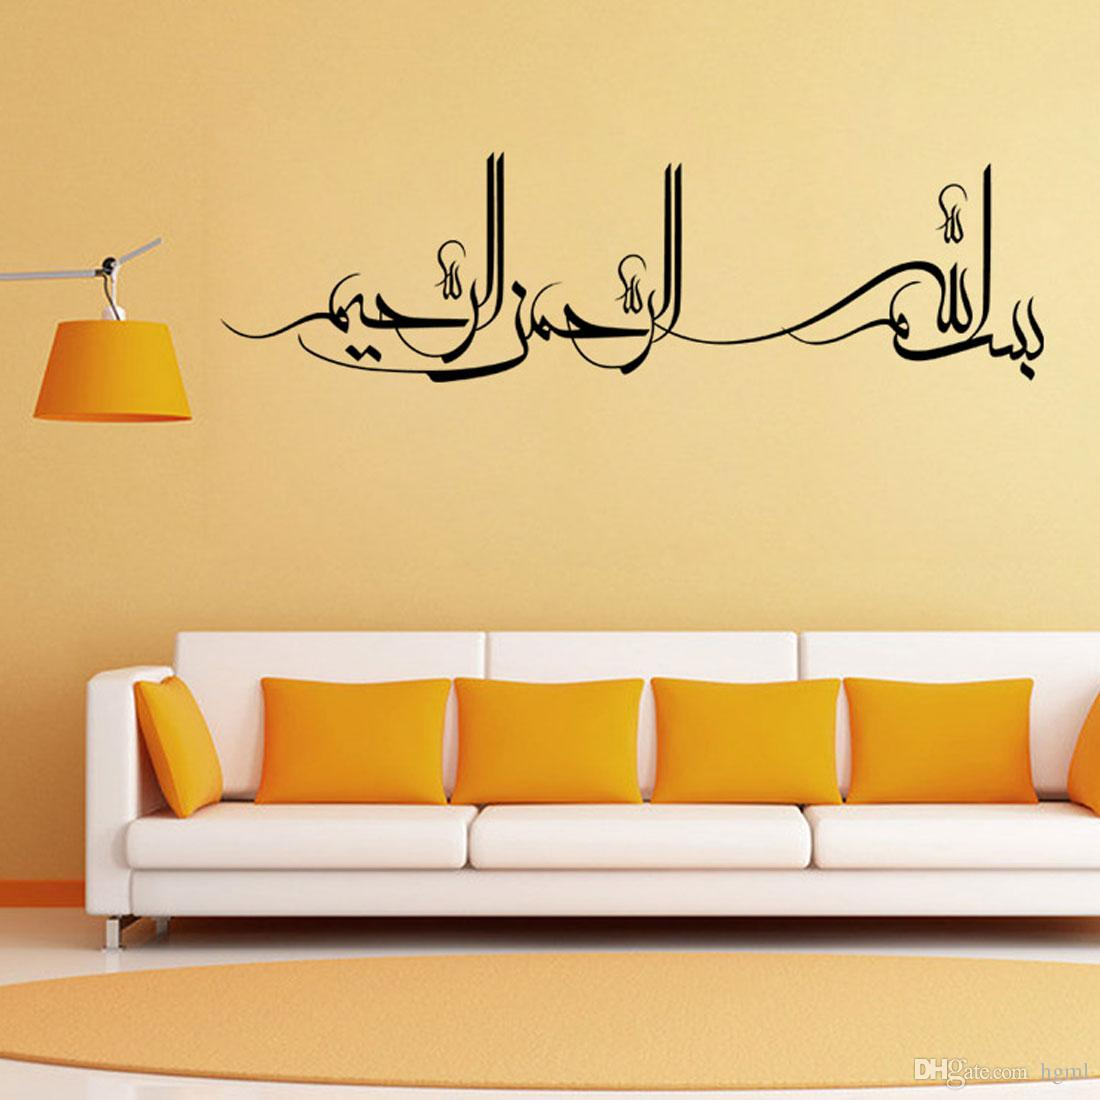 Muslim Stickers Decal Islam Removable Wallpaper Wall Art Islamic Design Wall  Sticker Hde_025 Decorative Decals Decorative Decals For Walls From Hgml, ... Part 15